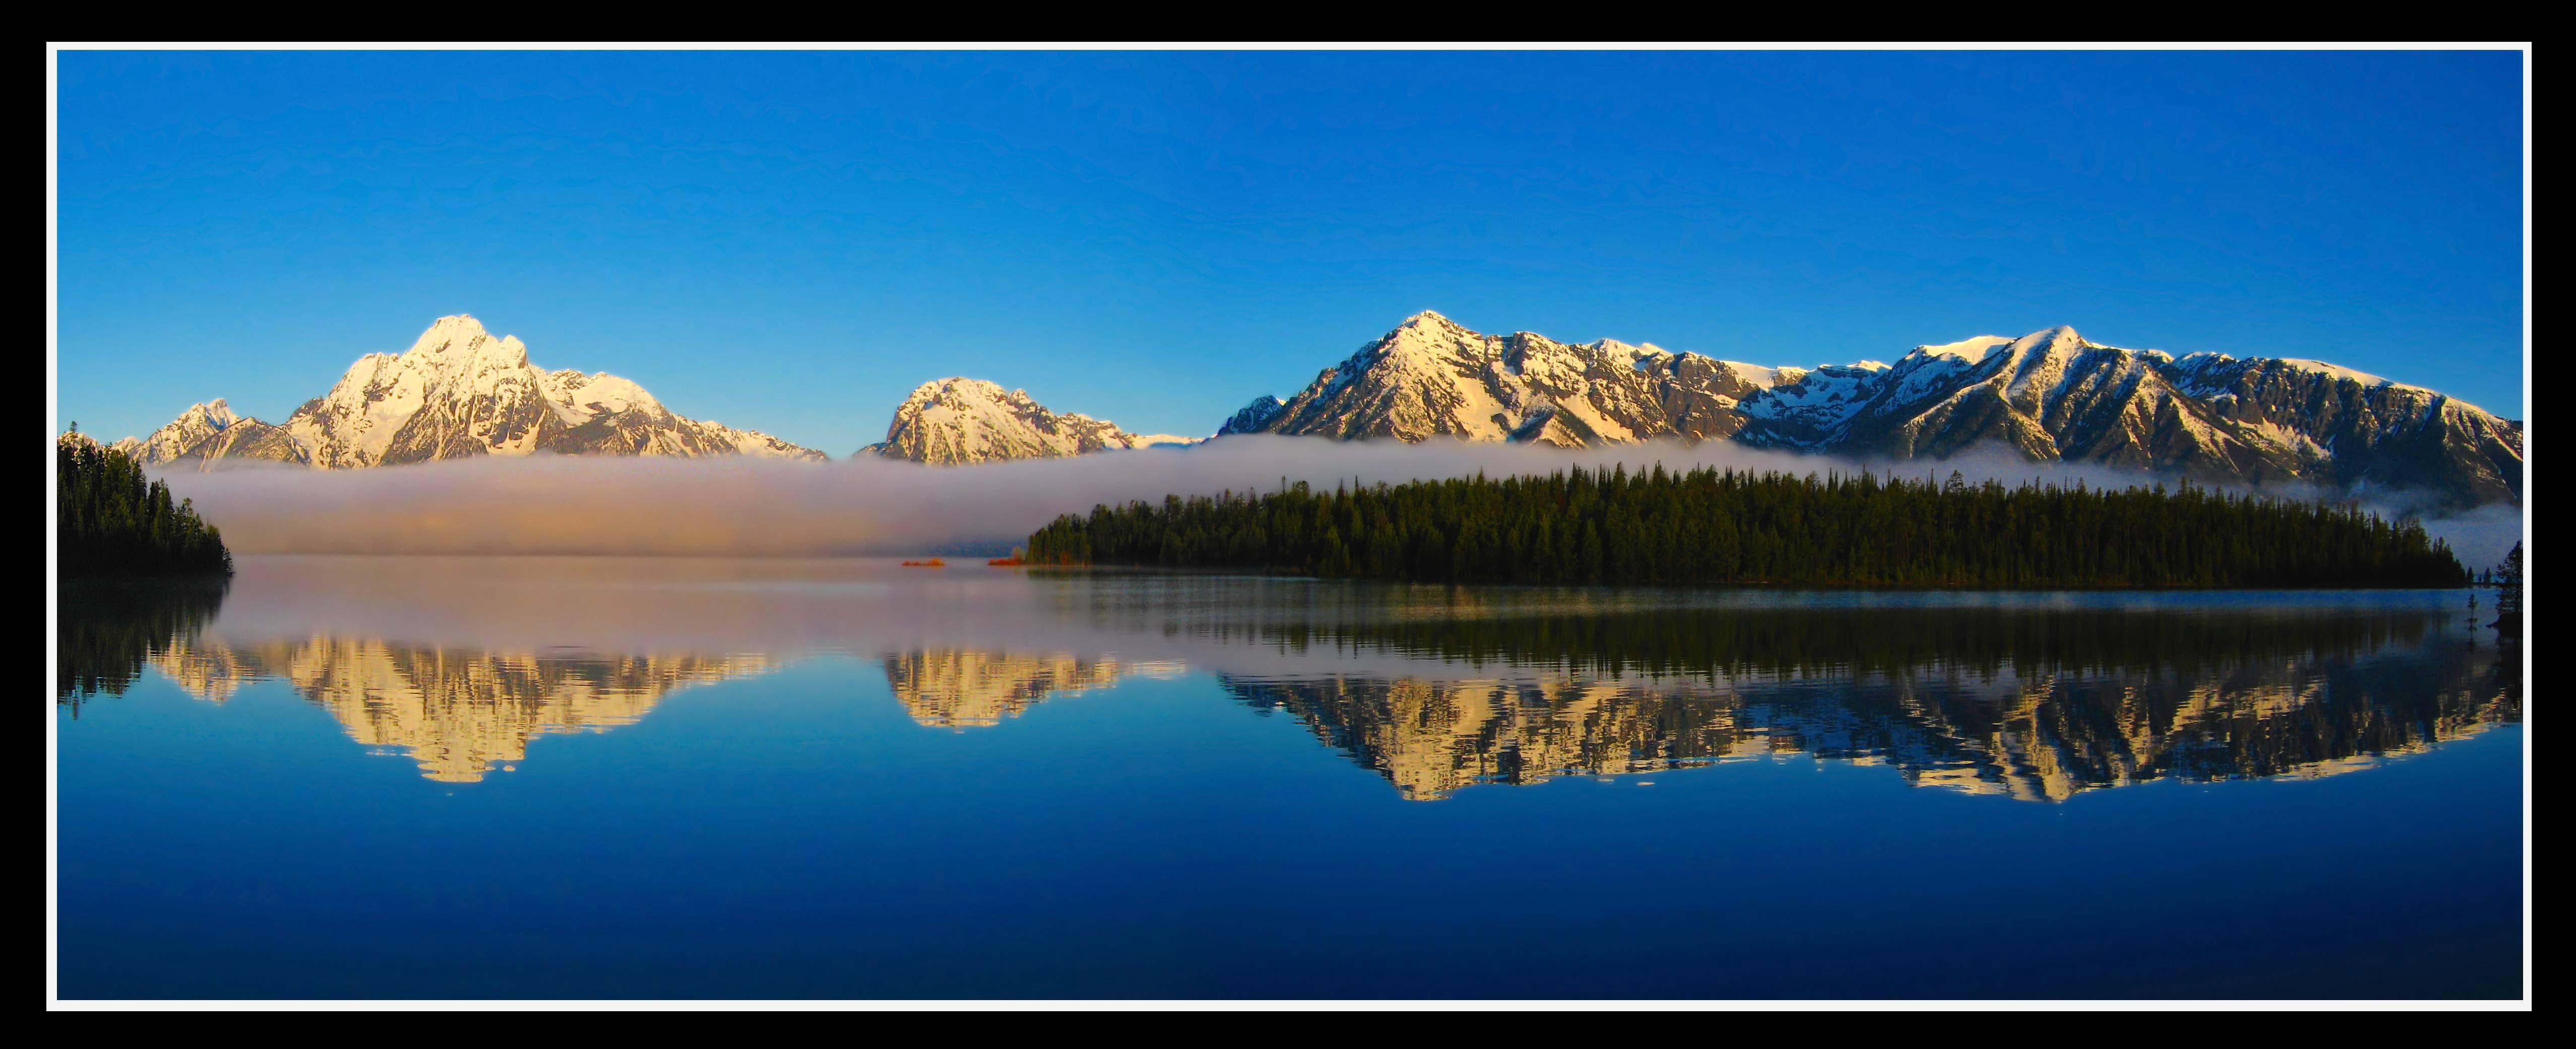 The Grand Tetons and Yellowstone